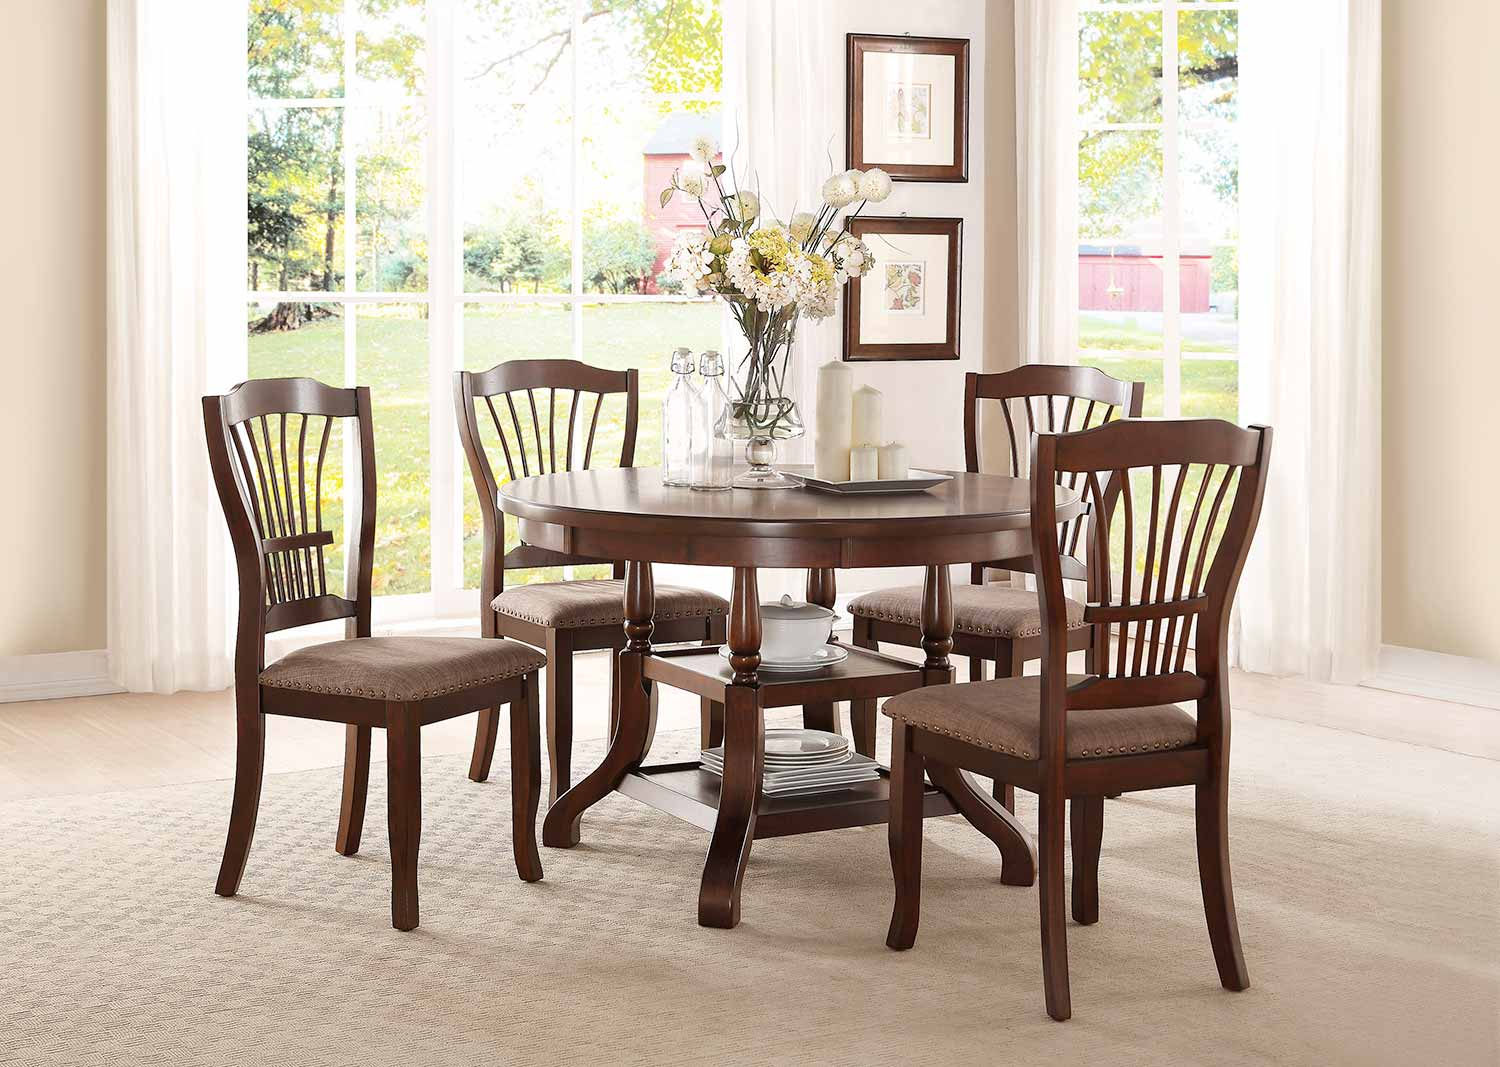 Homelegance Frankford Round Dining Set - Brown